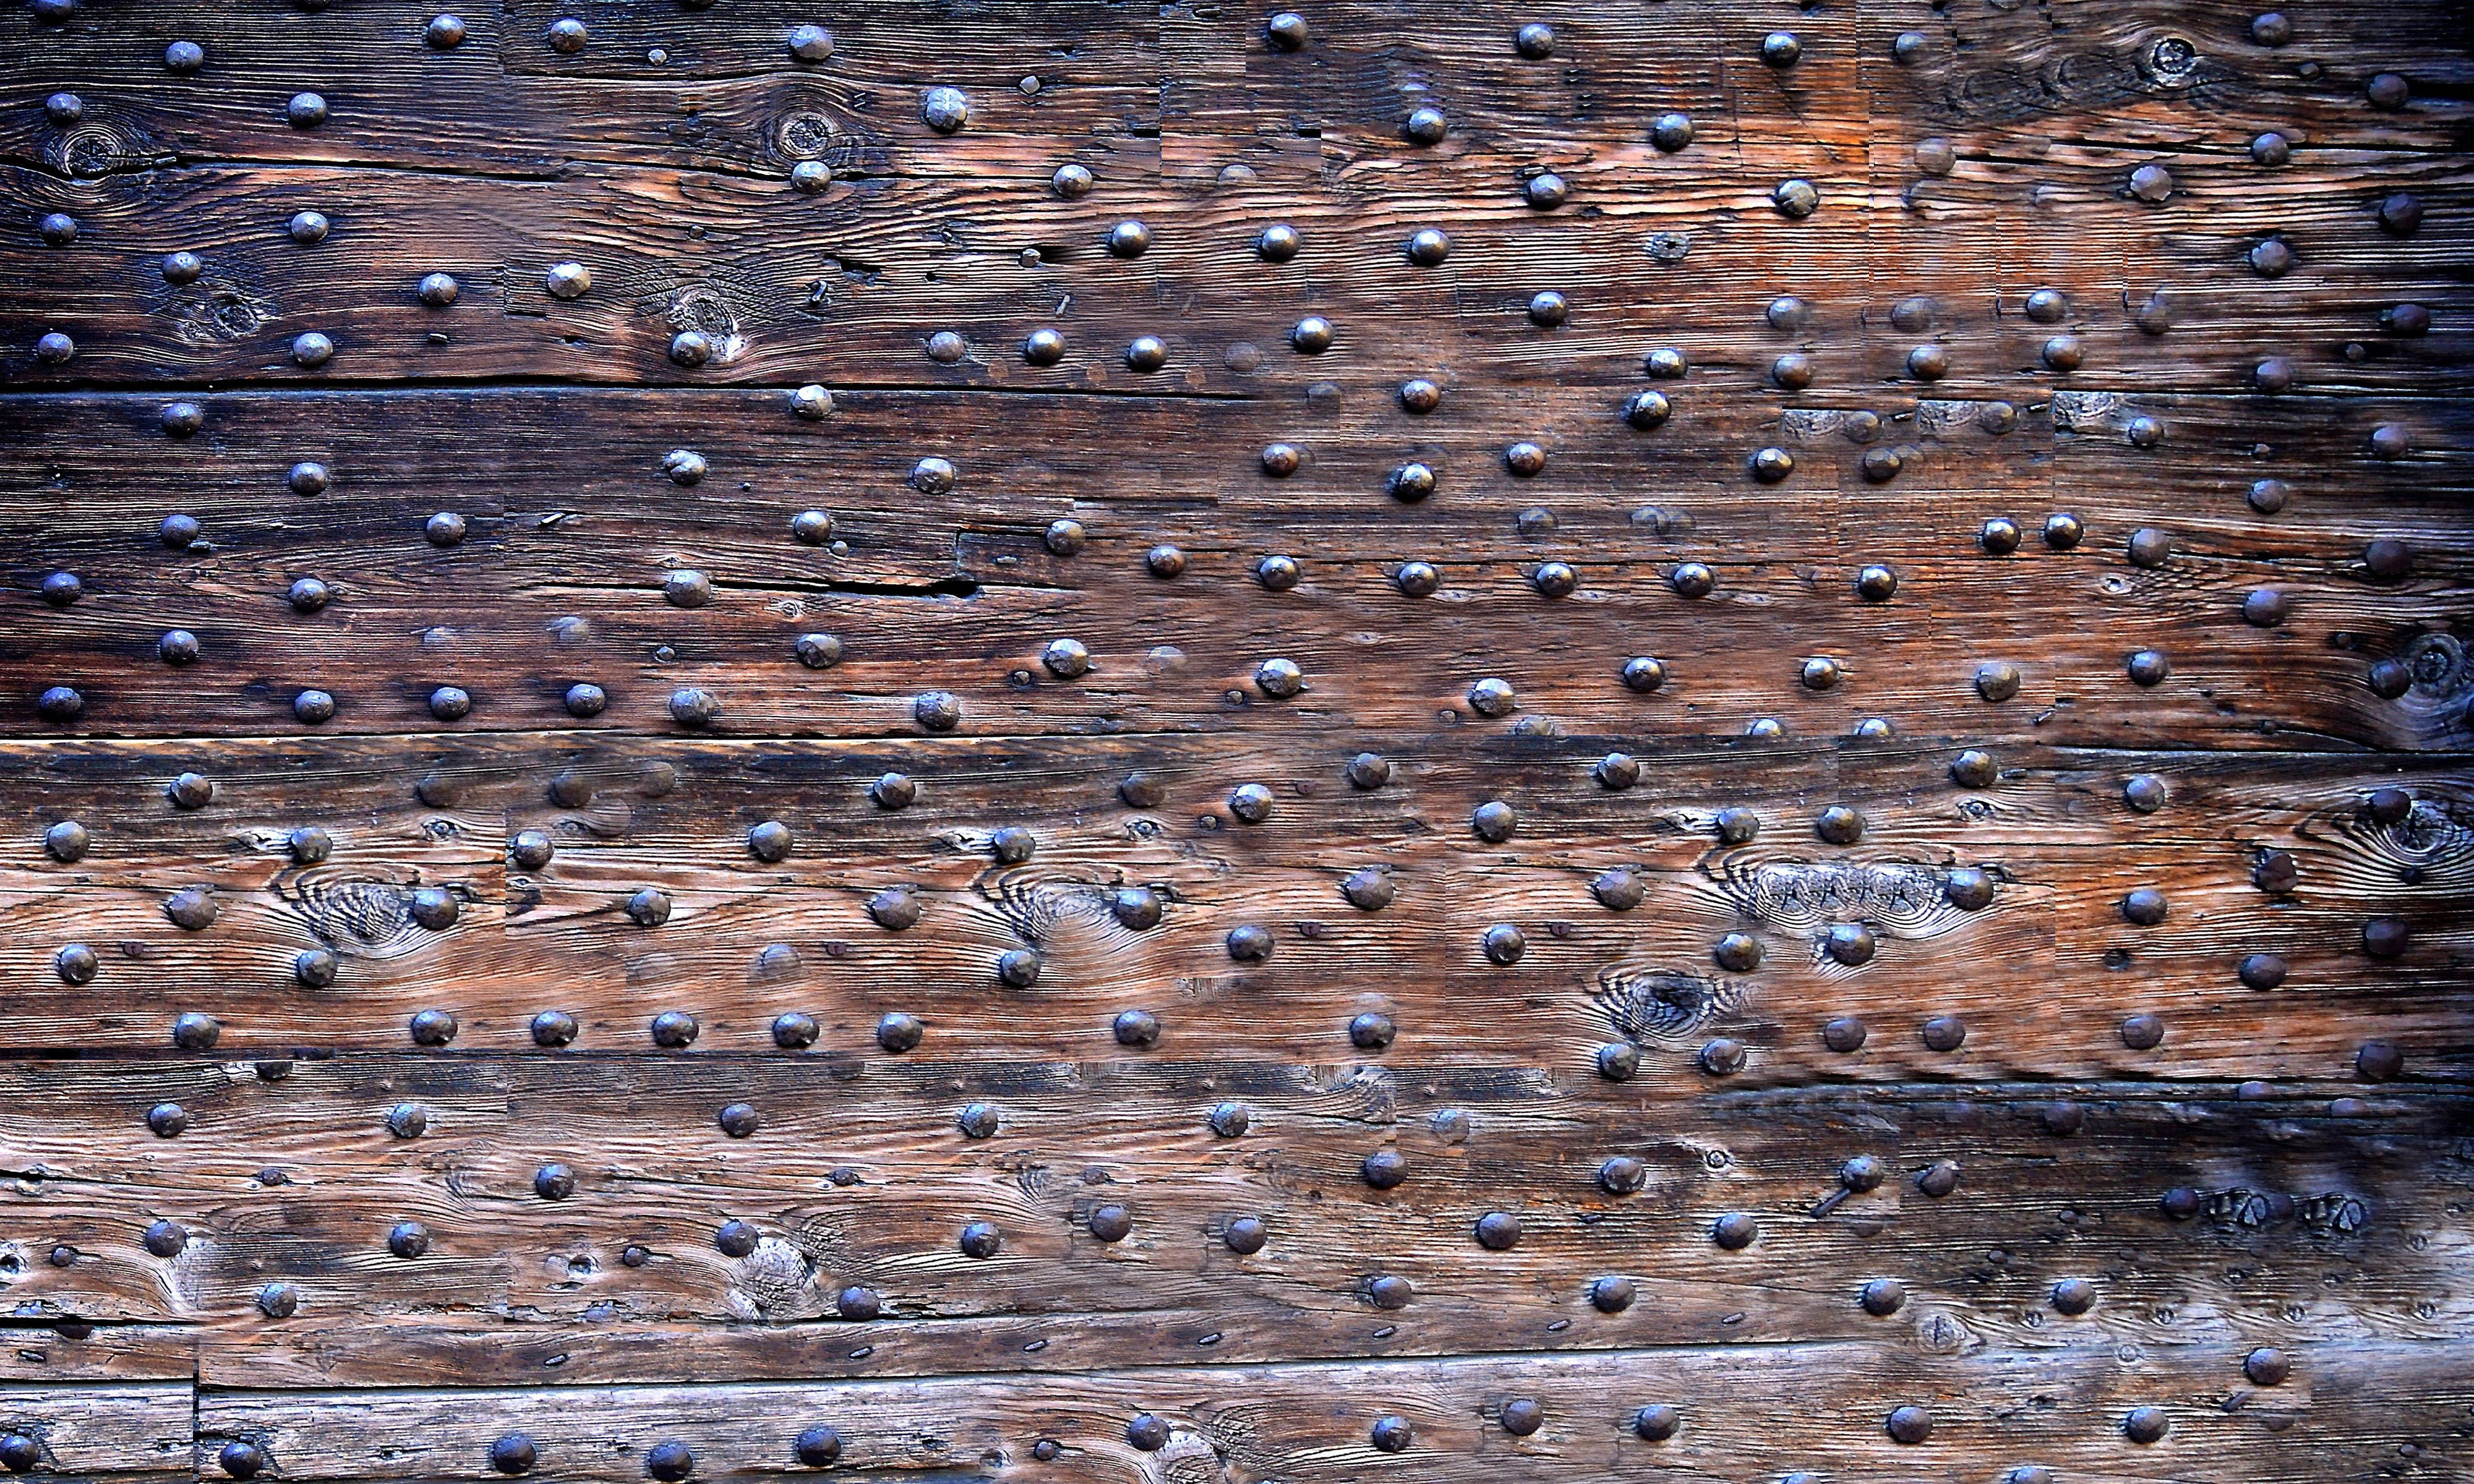 Brown Wooden Board With Black Bead